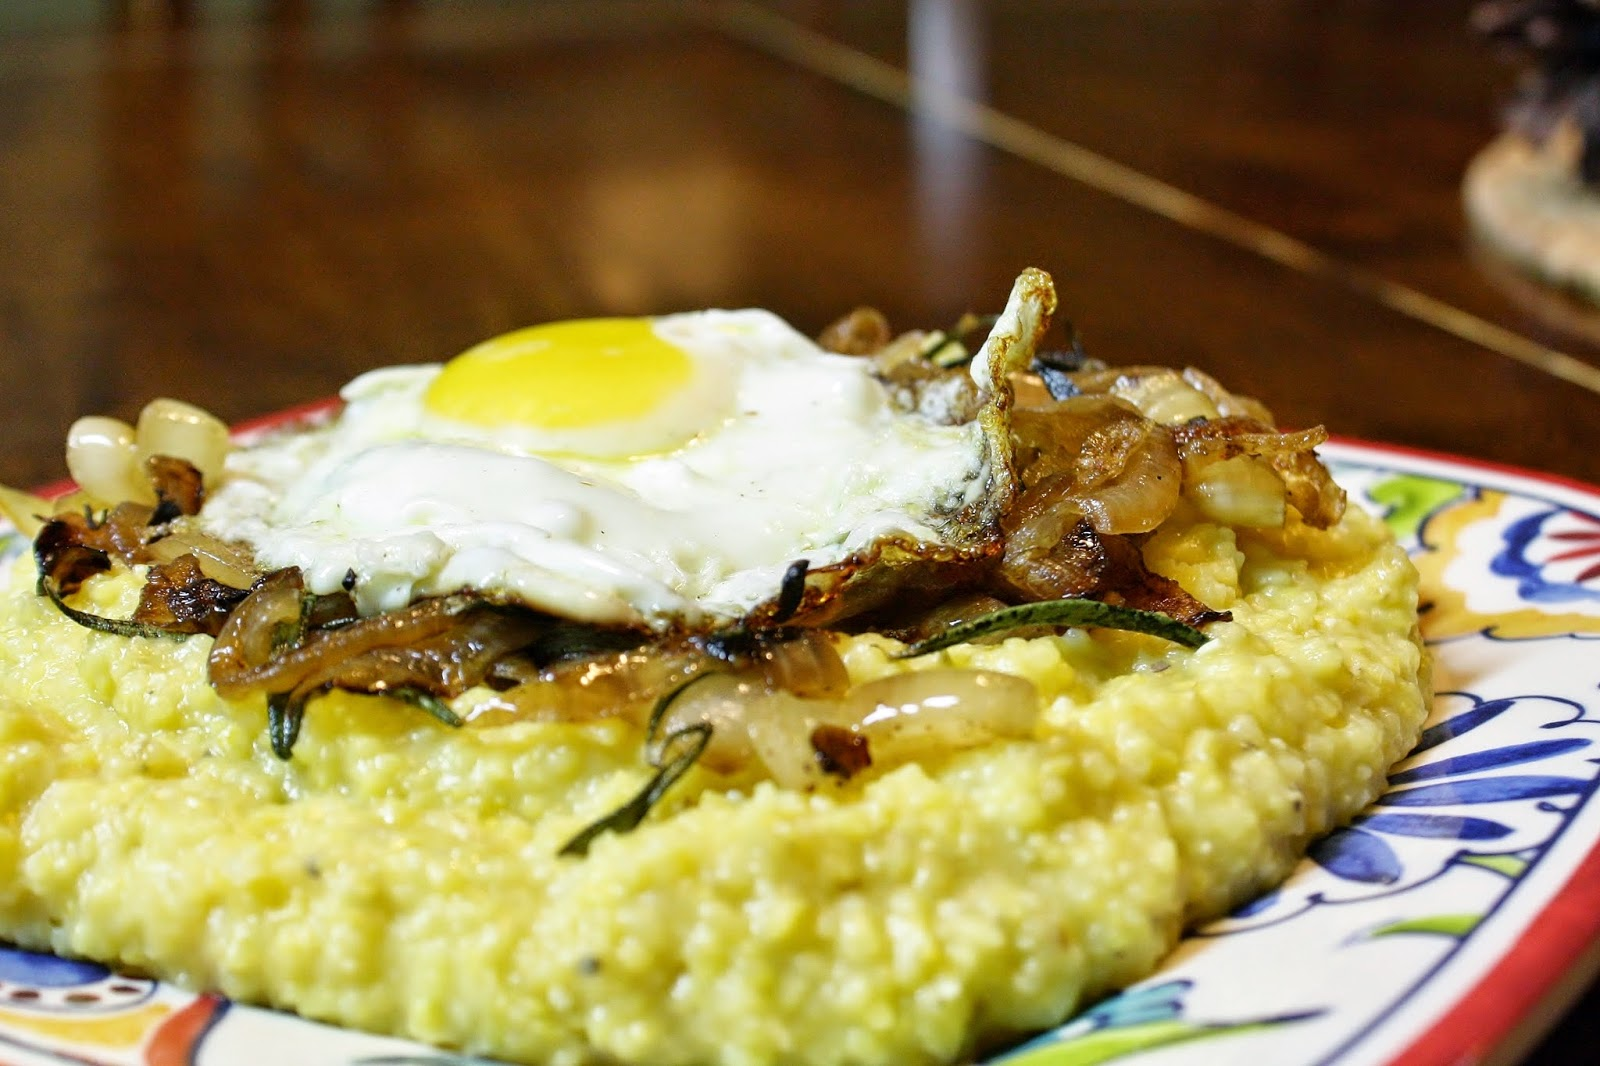 http://eatprayjuice.blogspot.com/2014/12/grits-with-rosemary-onions-and-fried-egg.html